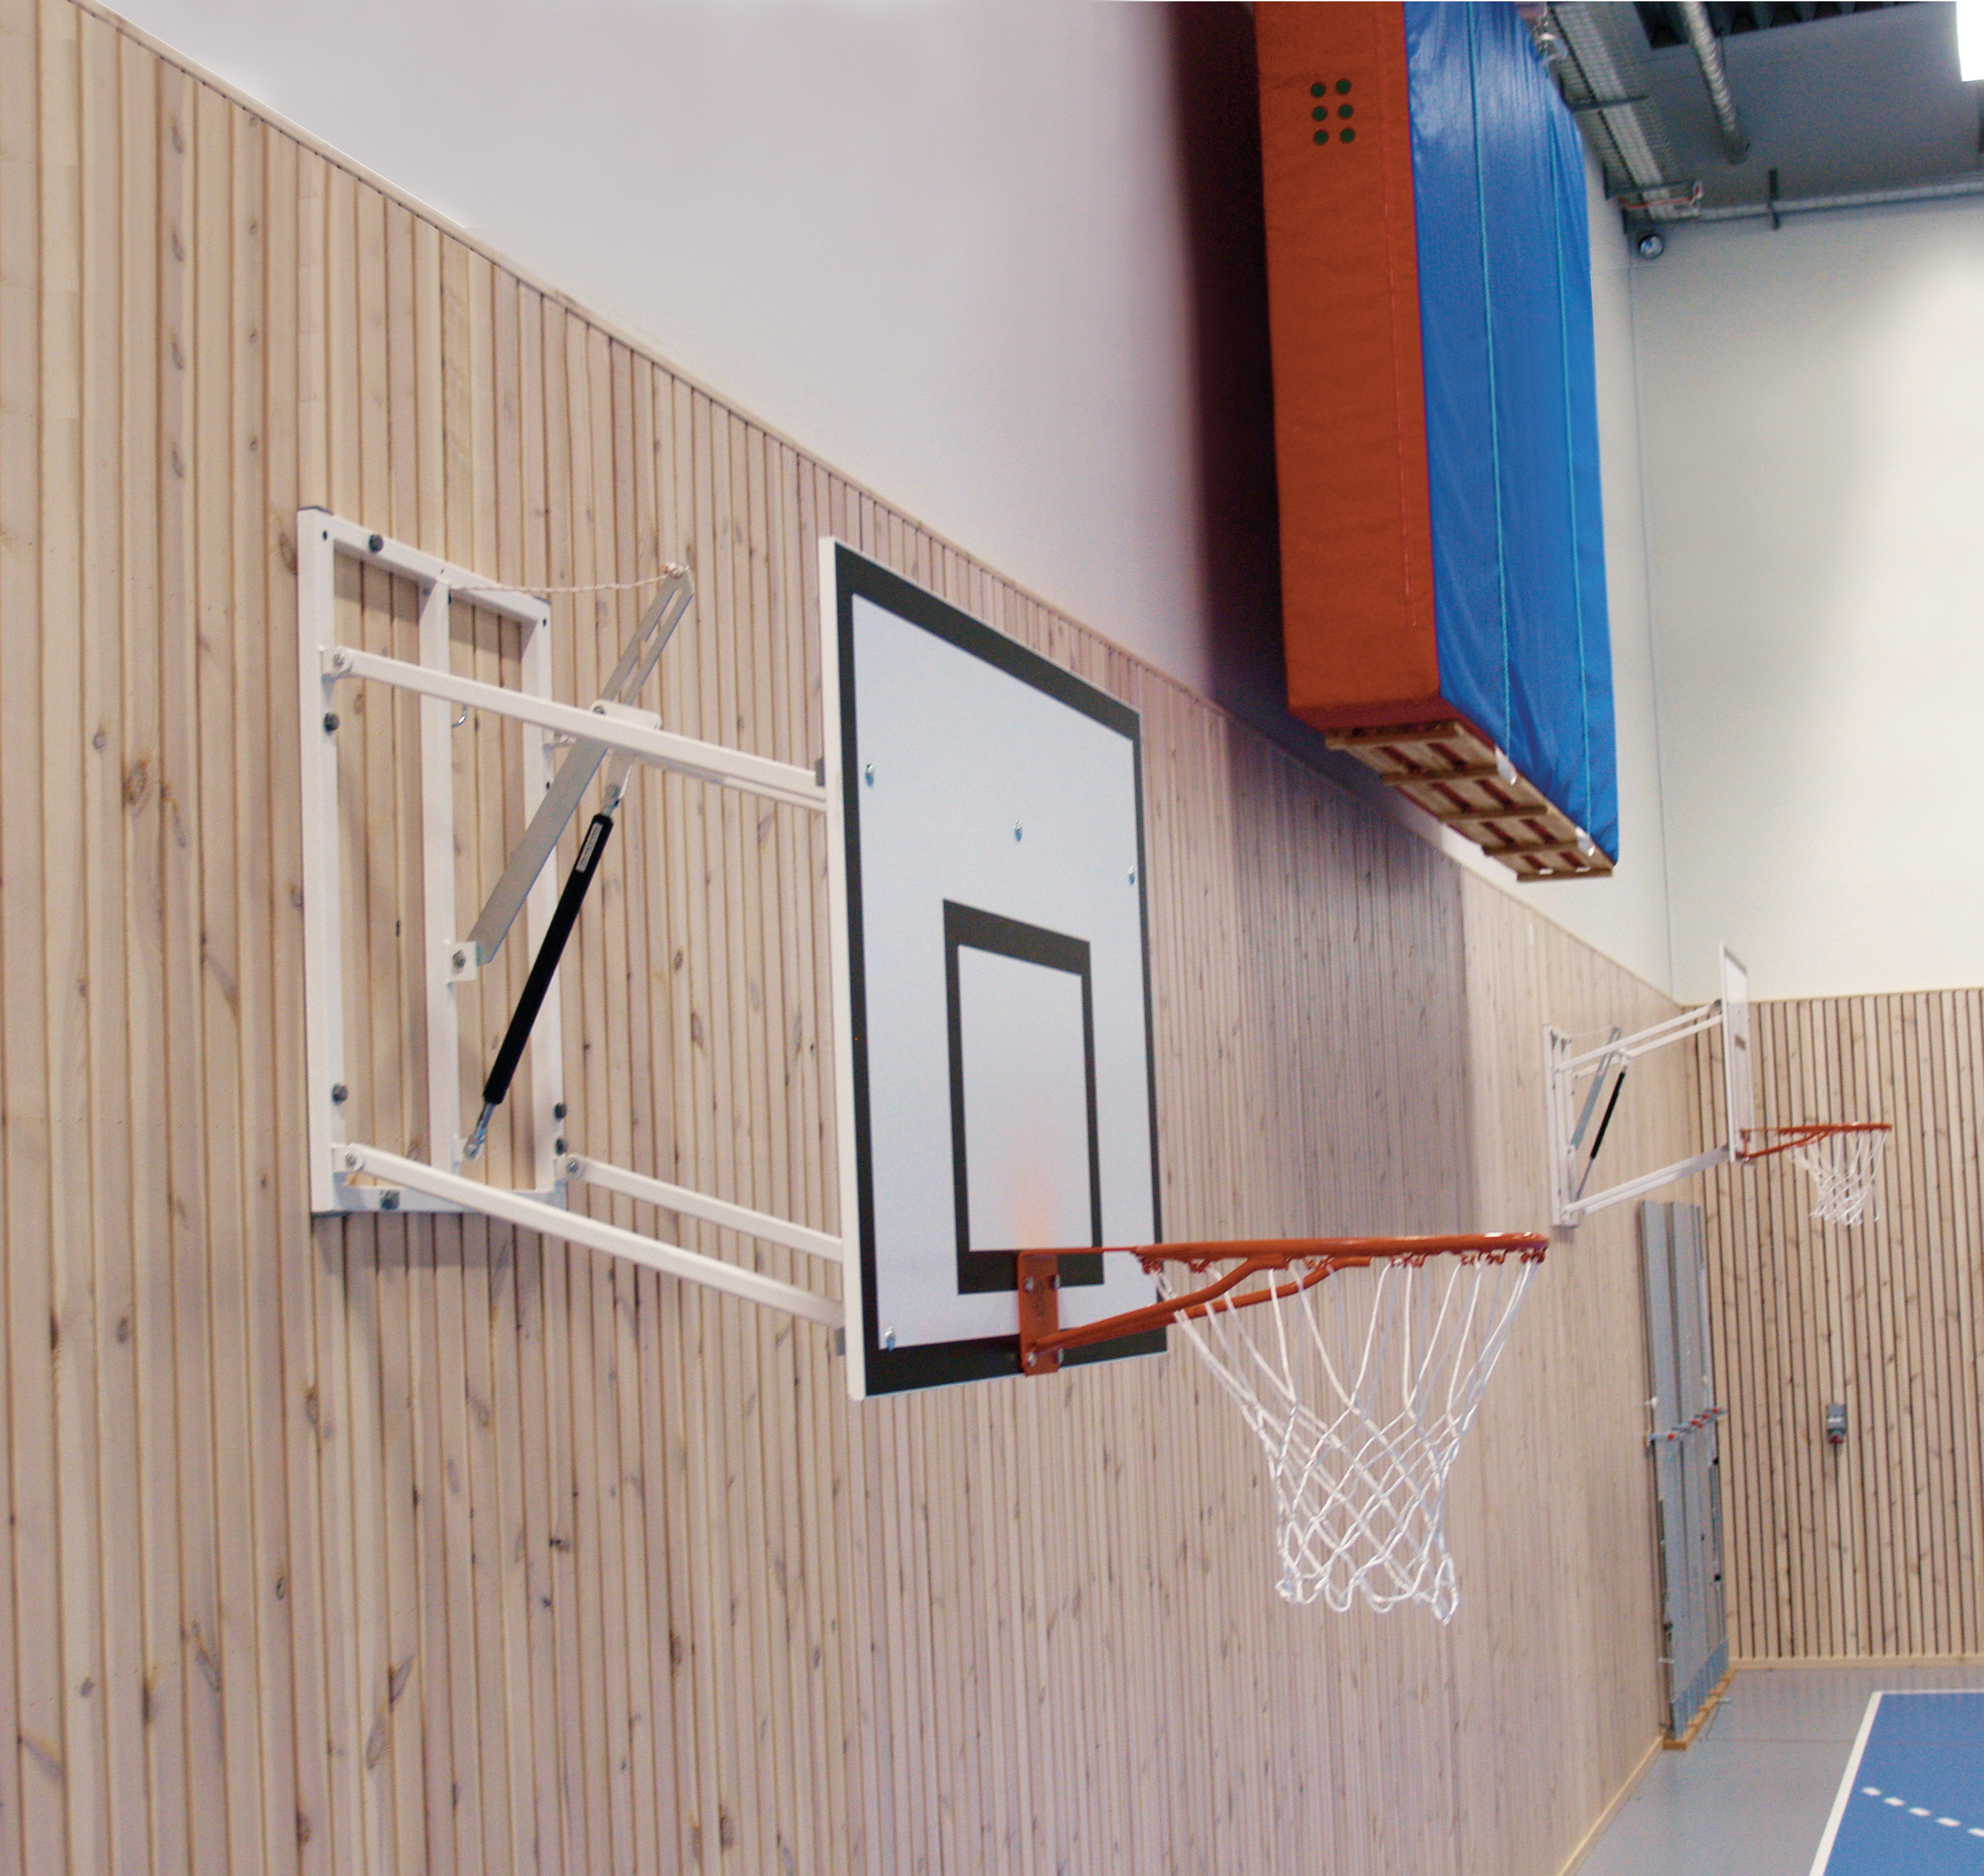 Adjustable Height Practice Basketball Goal at Junior Height (2.6m) by Unisport